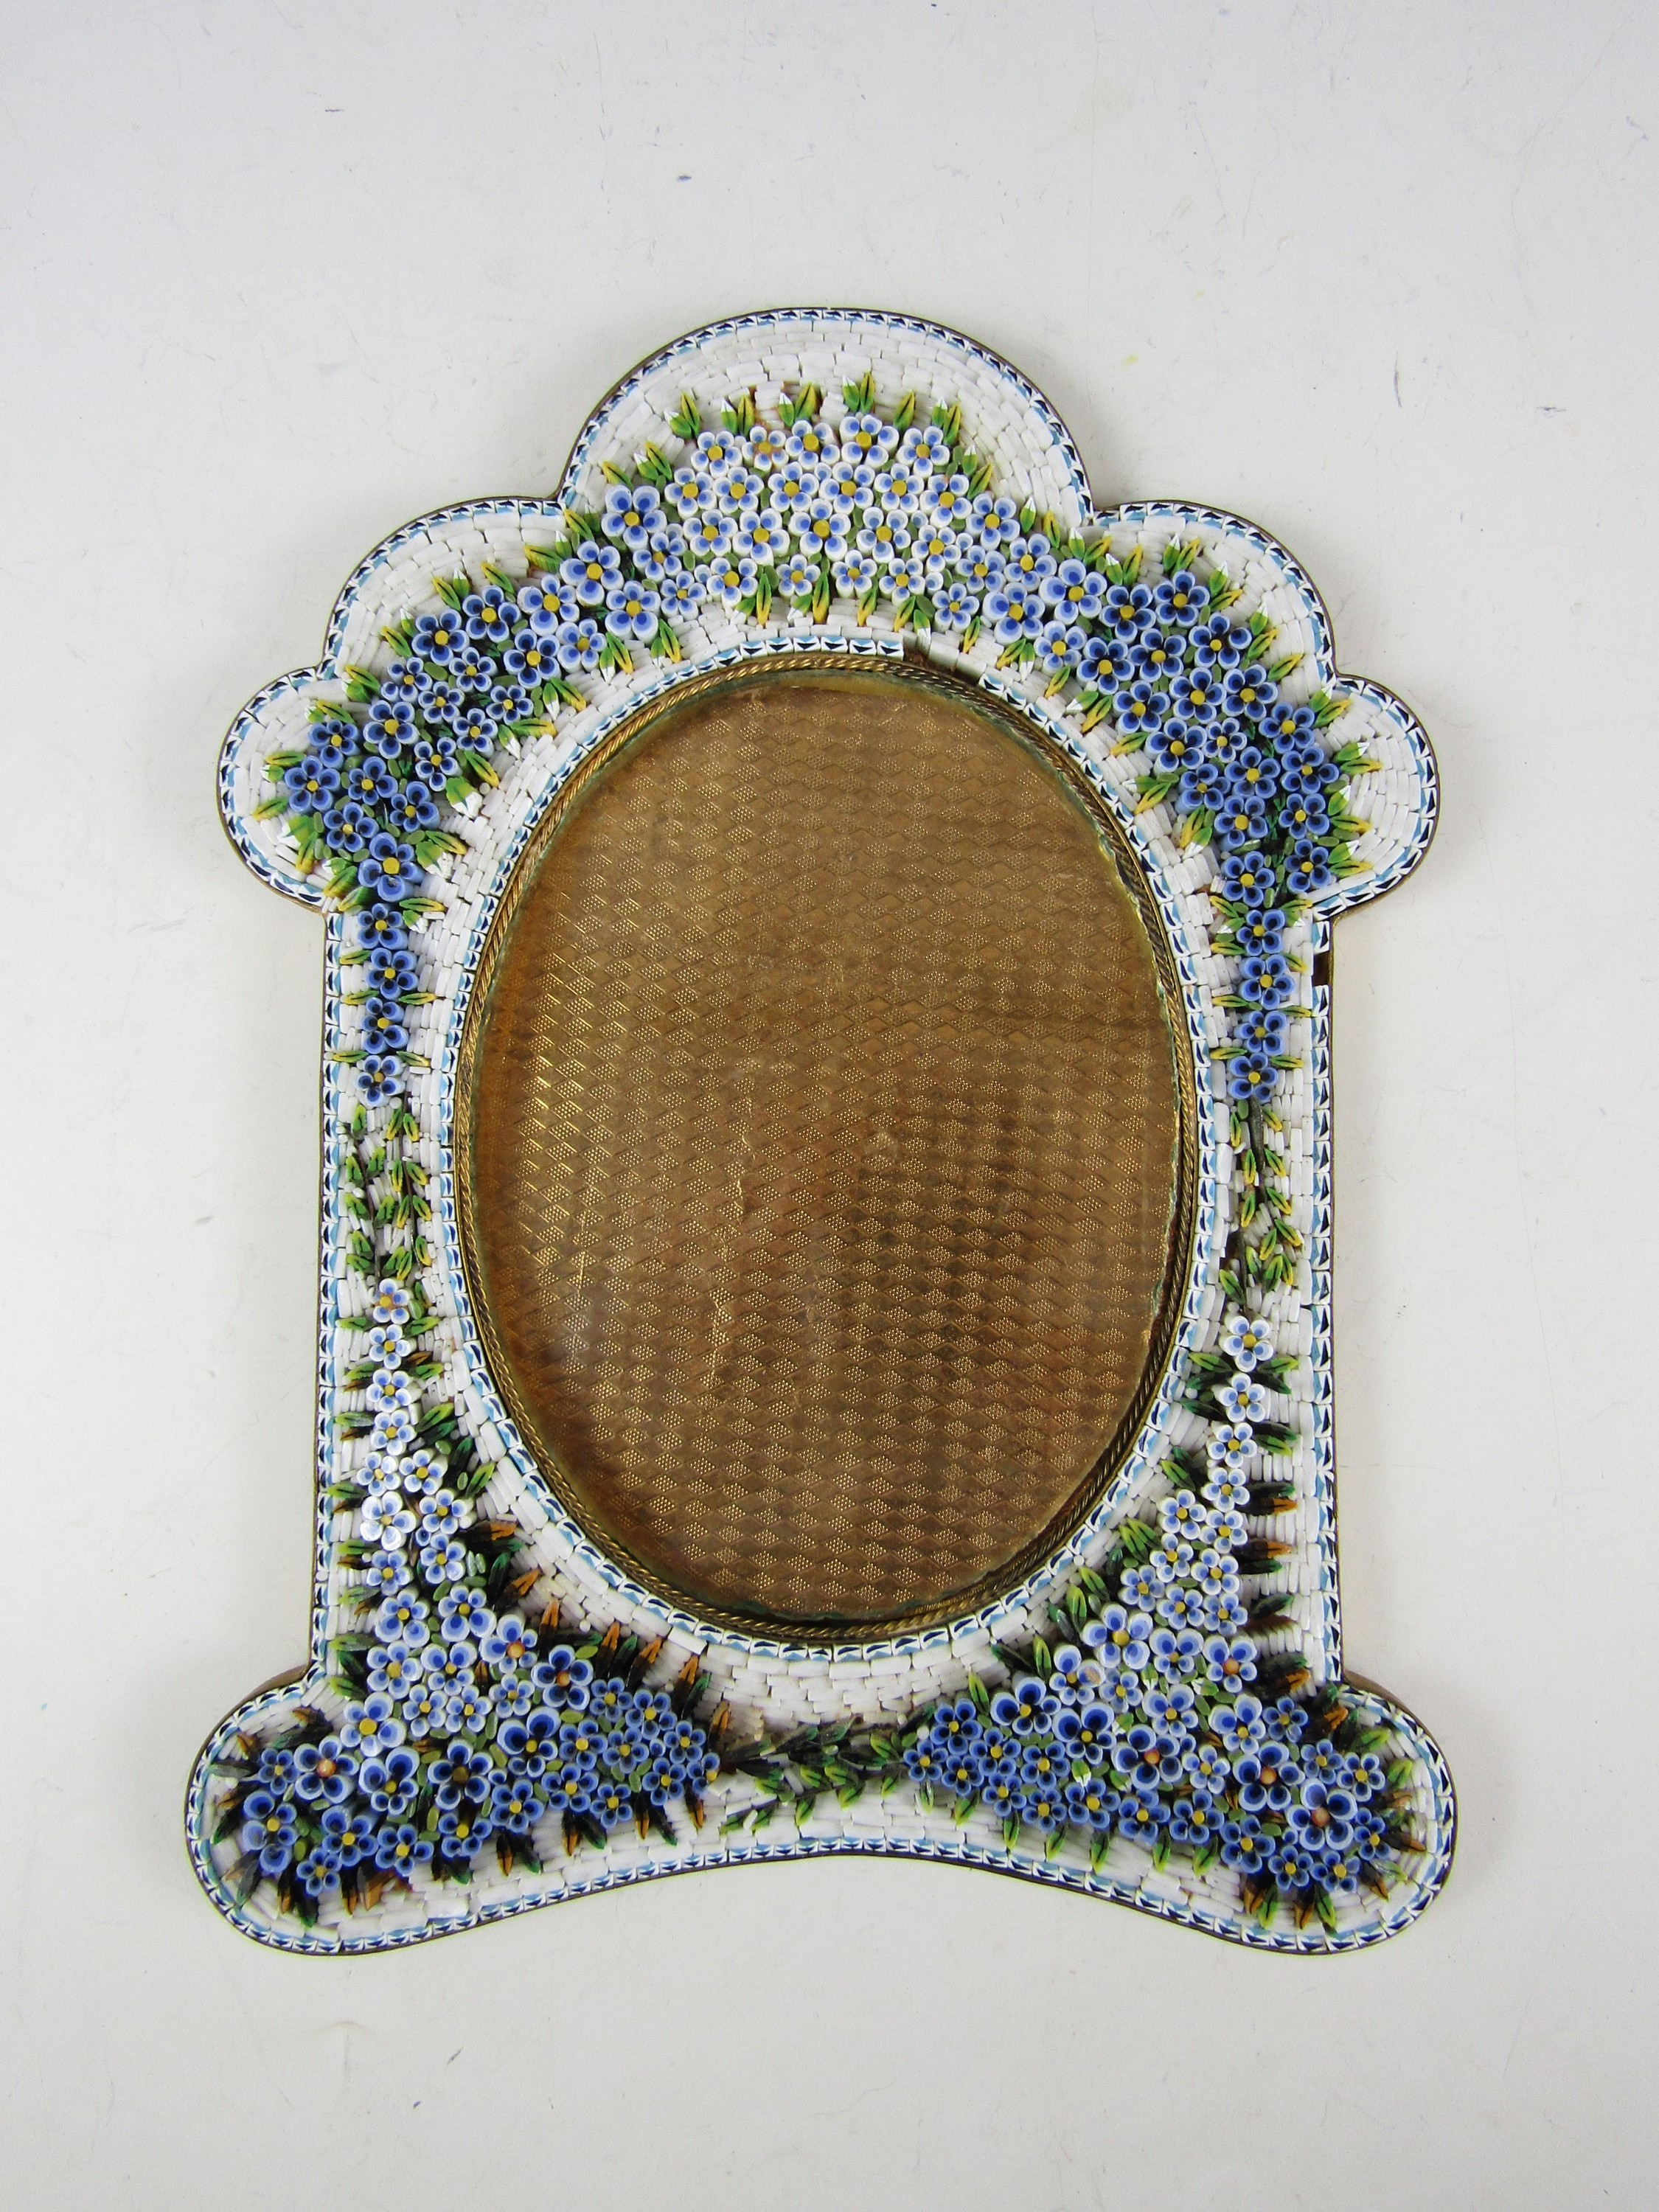 Lot 11 - Two late 19th Century Venetian glass micromosaic picture frames, one in the shape of a heart with